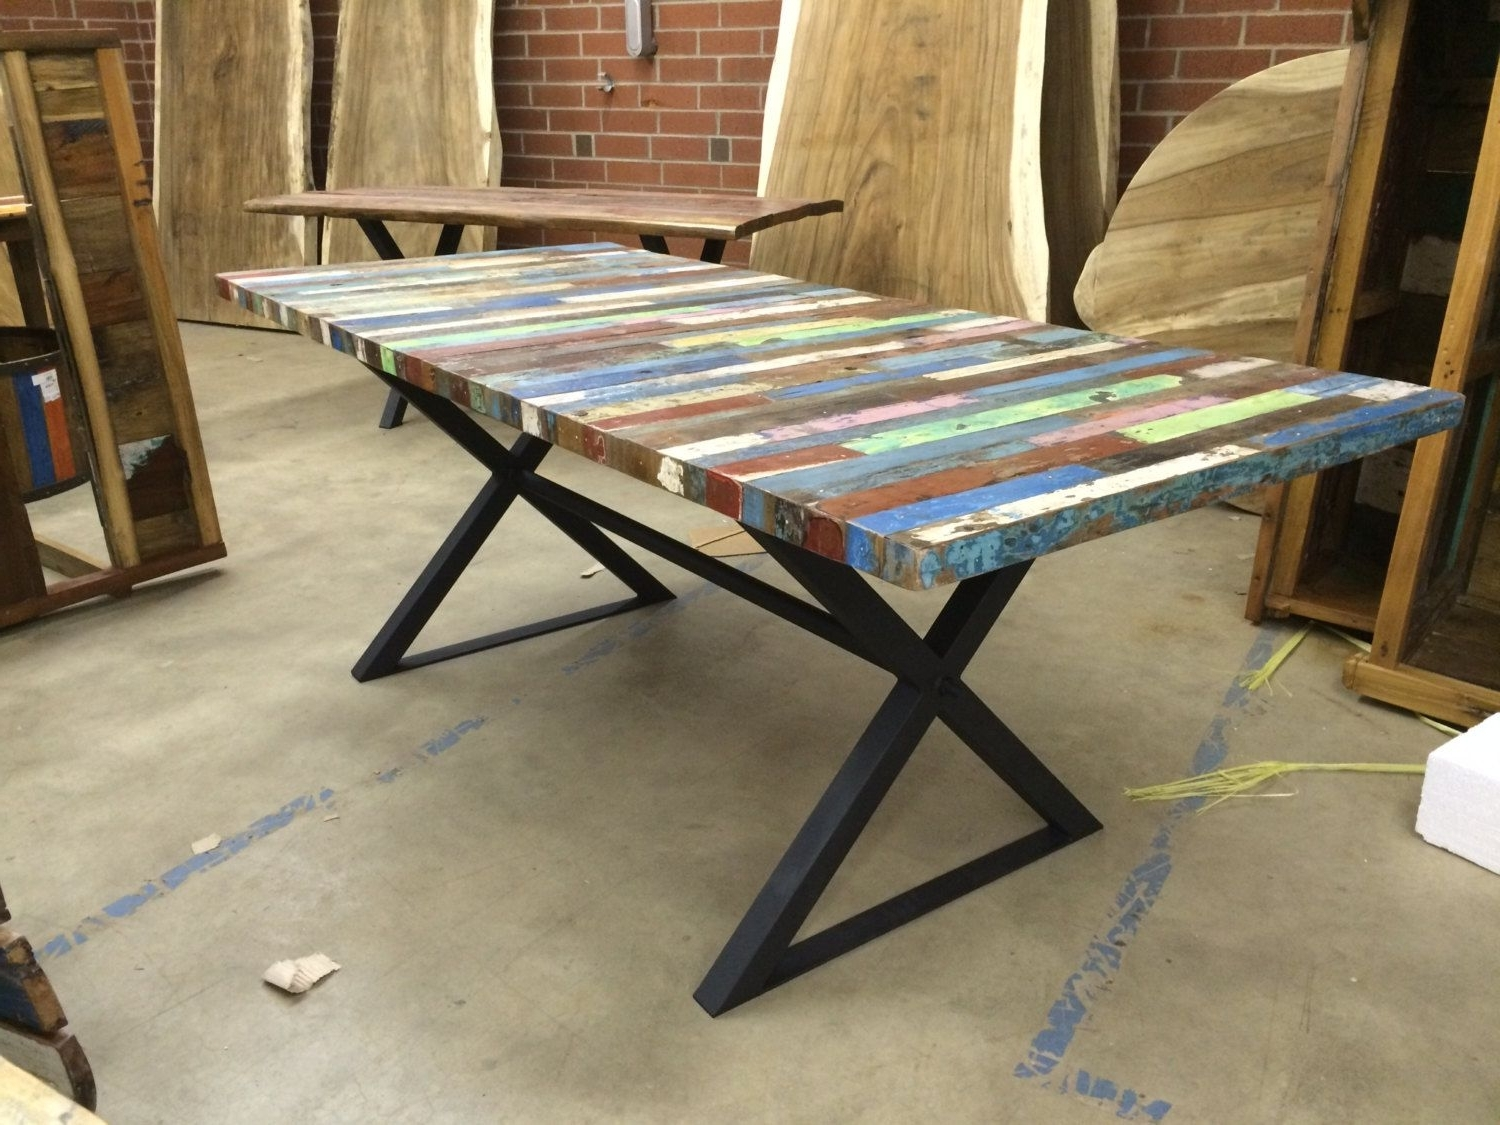 Buy A Handmade Reclaimed Dining Table, Bali Boat Wood Table, Custom Regarding Recent Balinese Dining Tables (View 3 of 25)